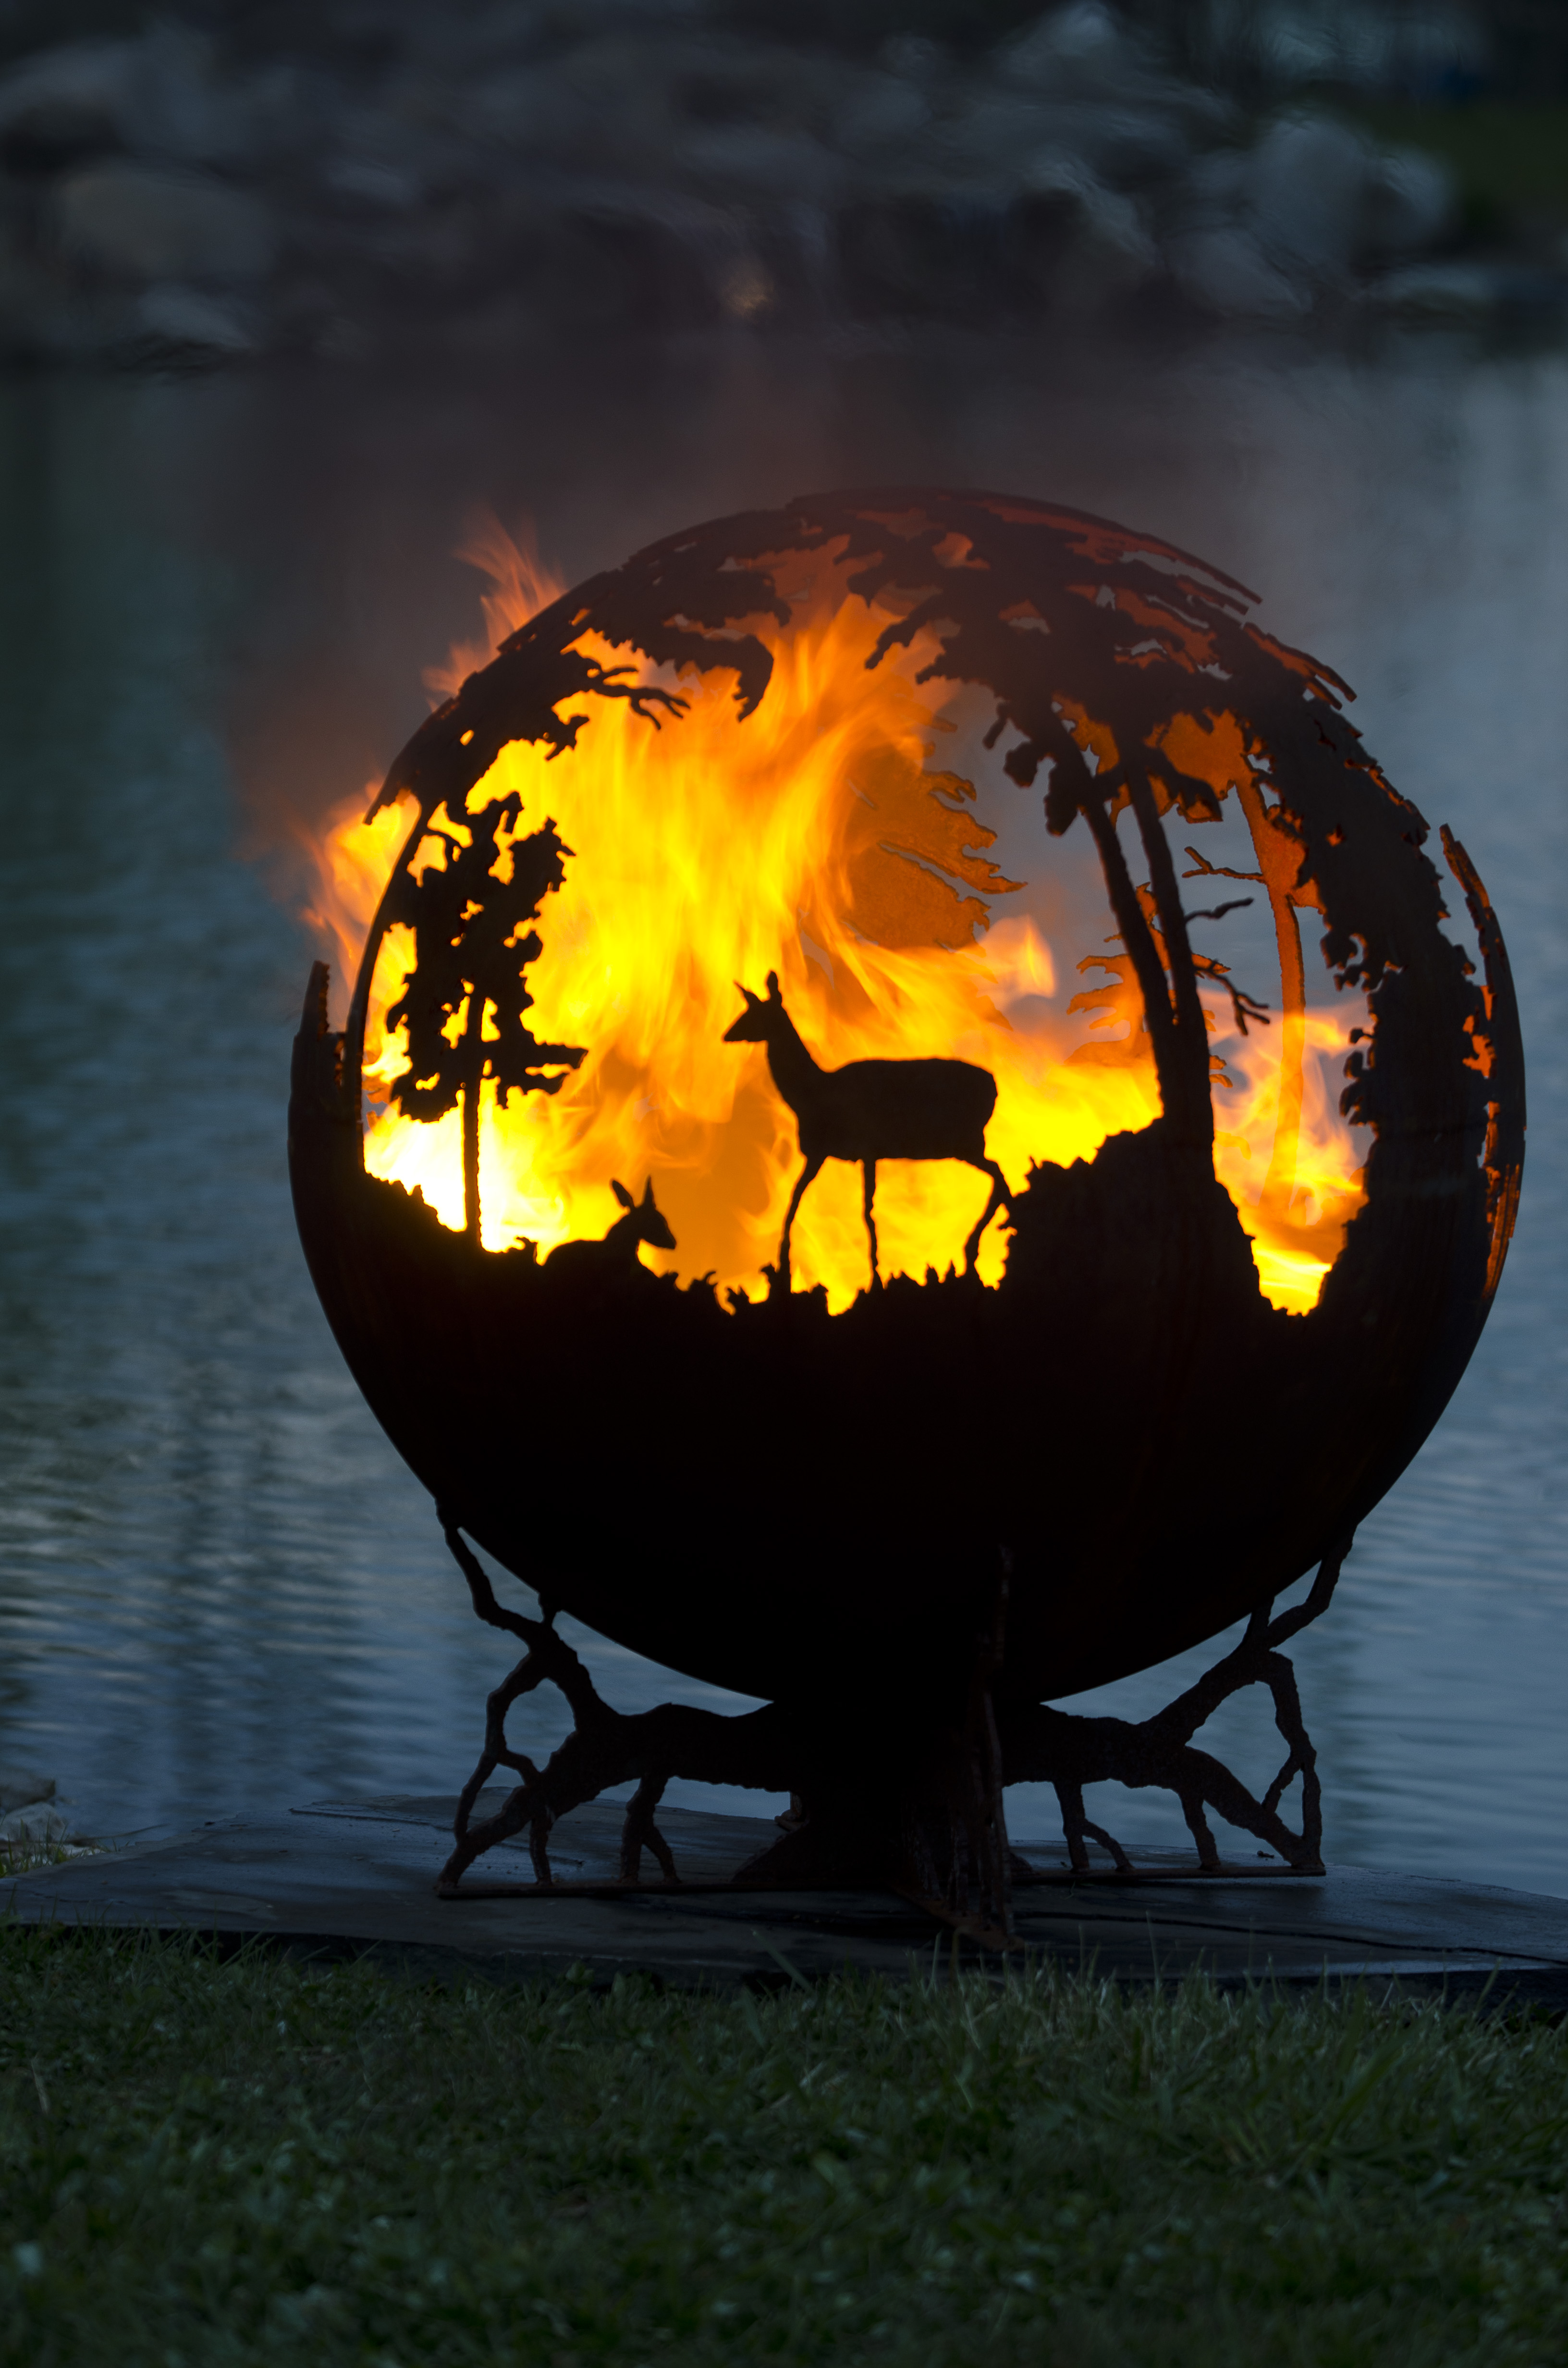 Up North Fire Pit Sphere The Fire Pit Gallery regarding size 3264 X 4928